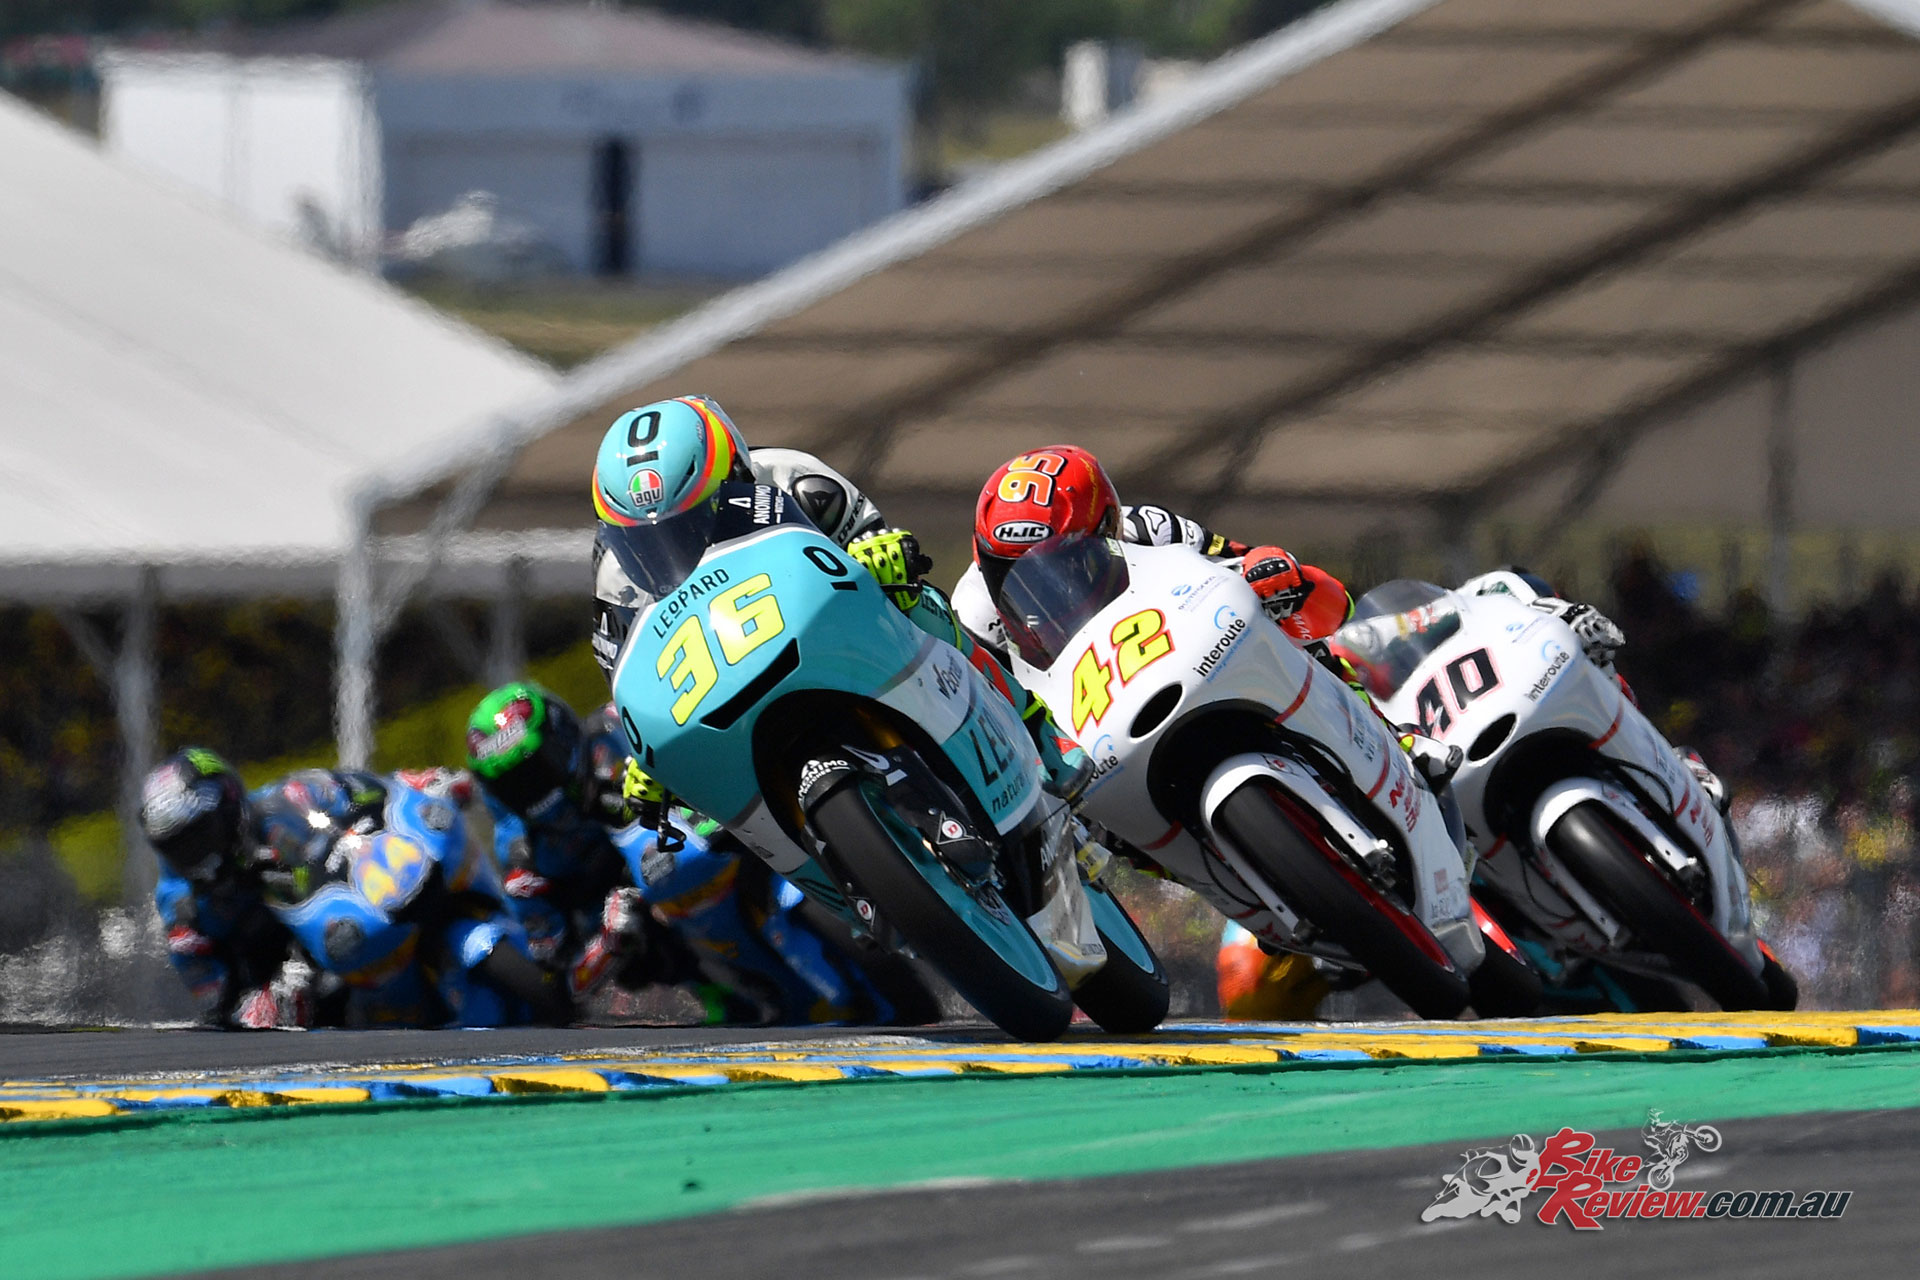 Joan Mir in the lead at Le Mans